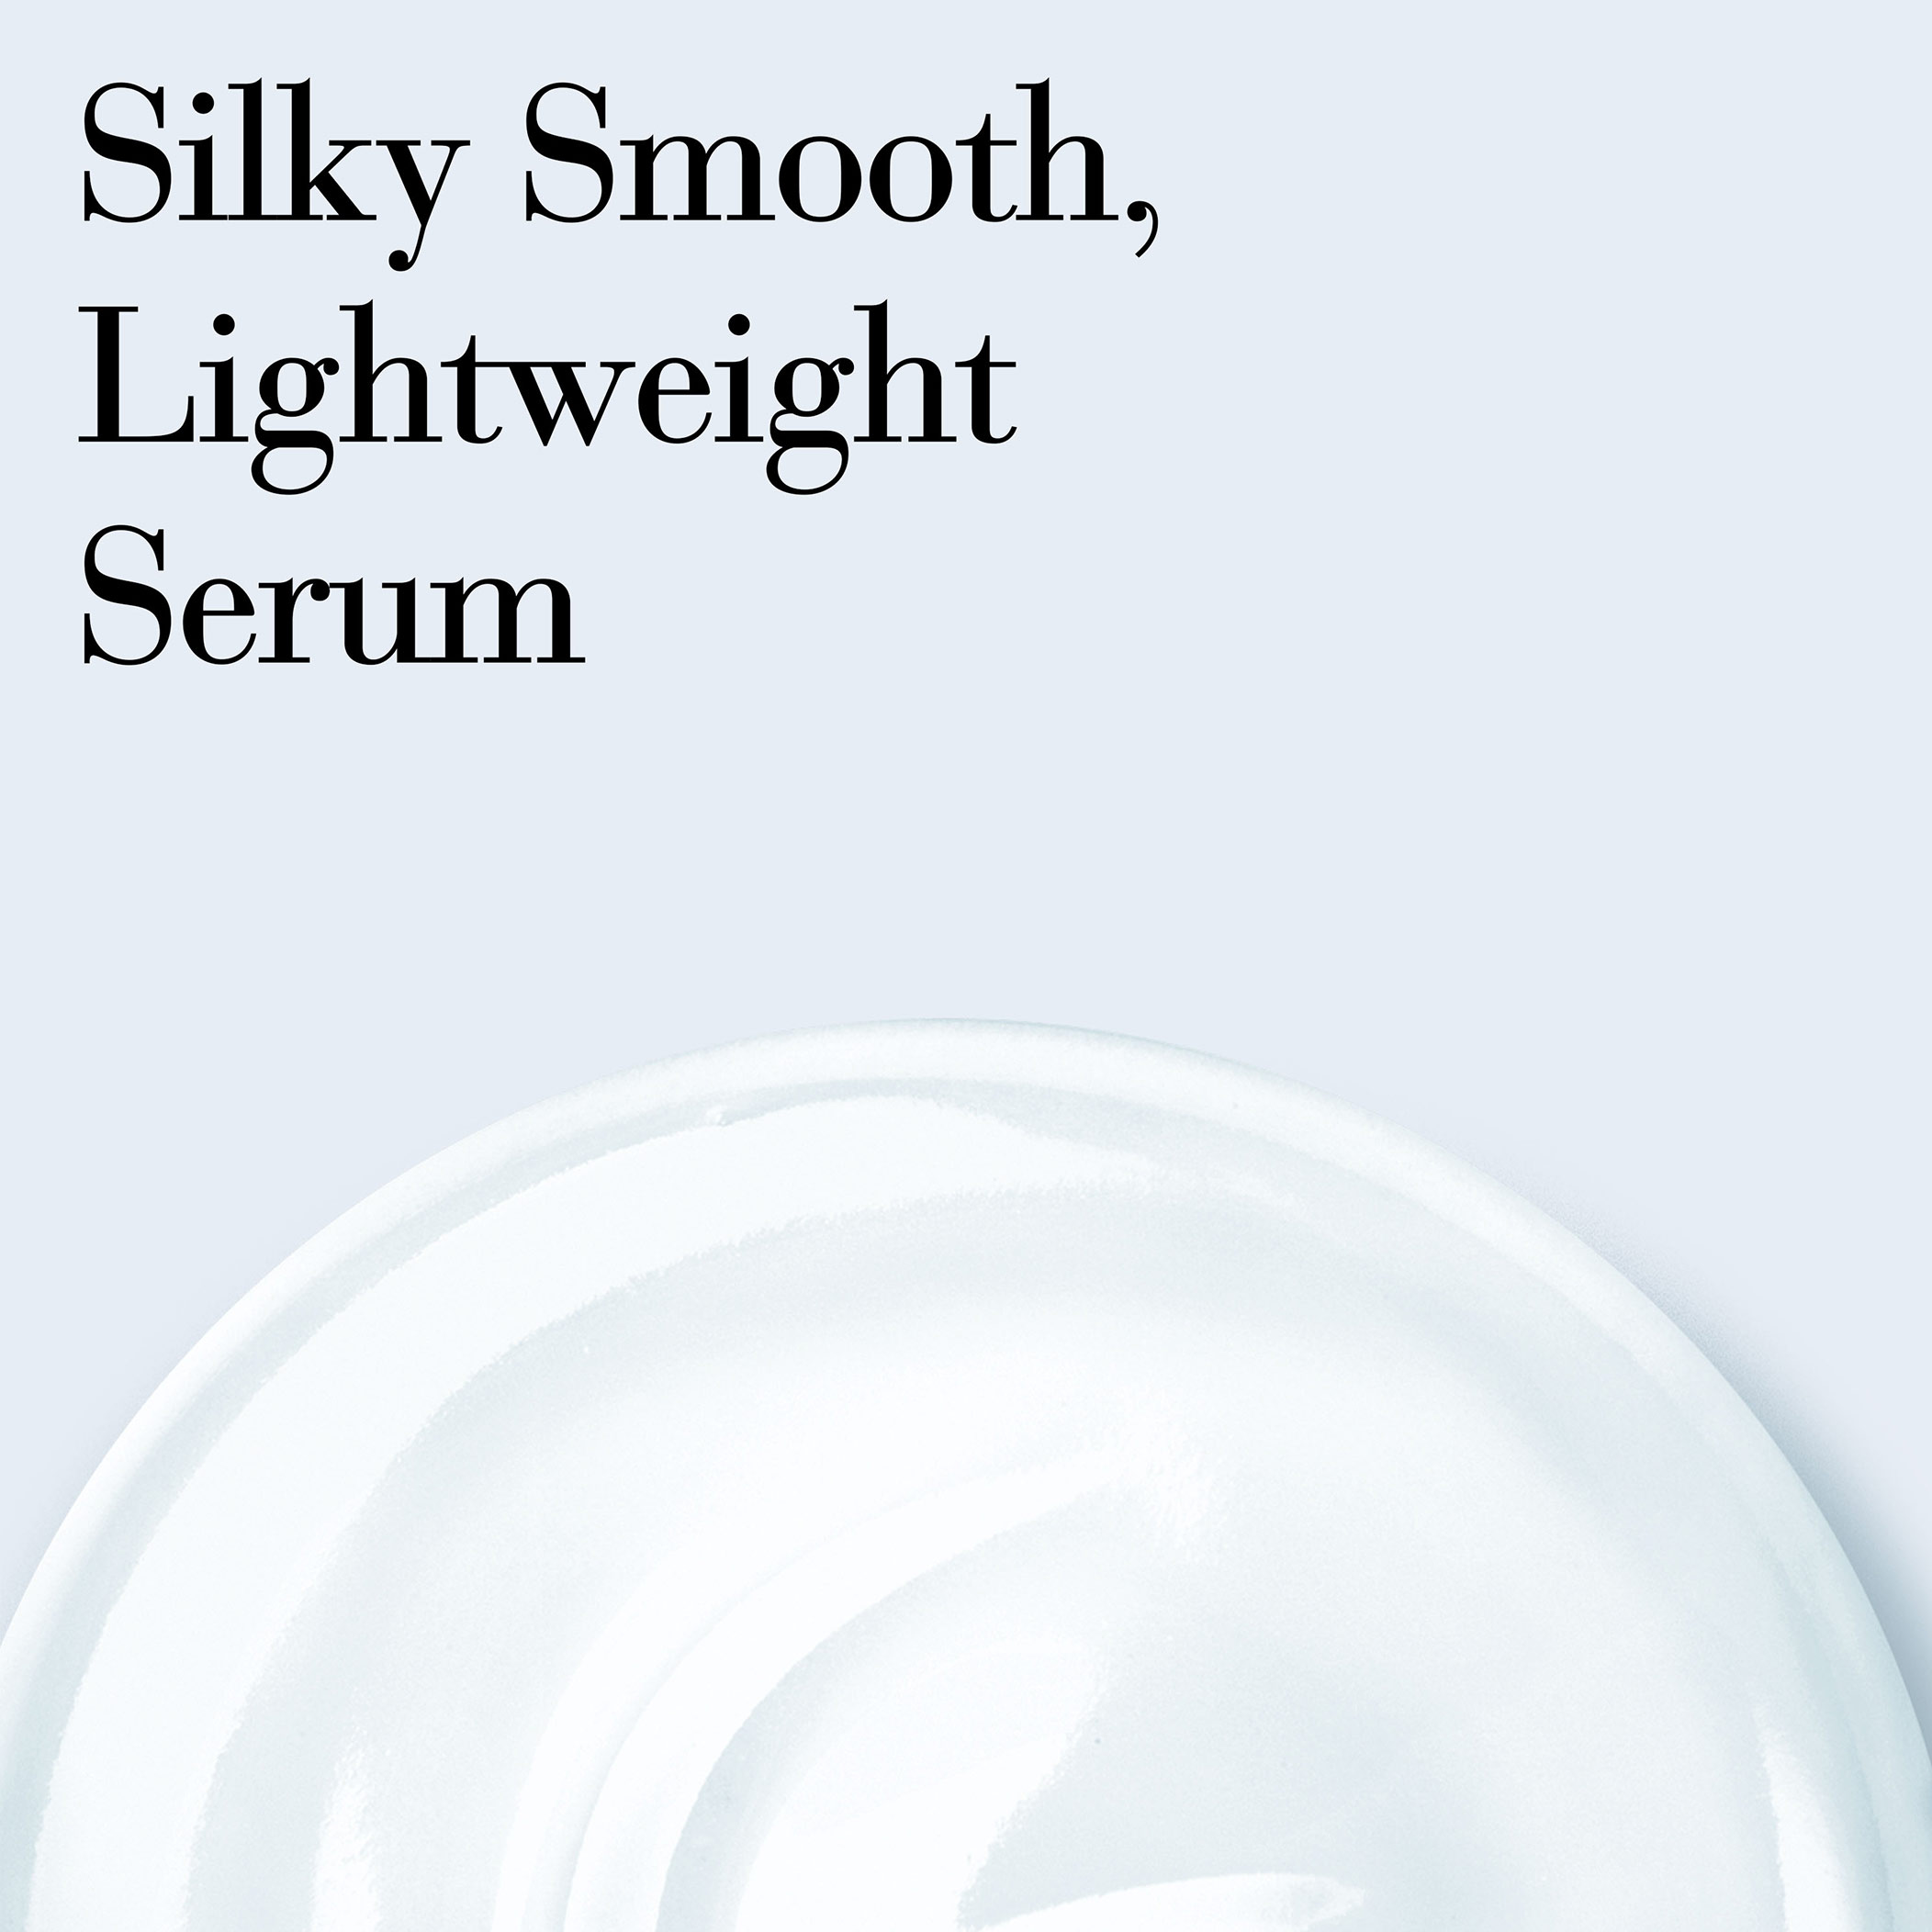 Texture is Silky Smooth, Lightweight Serum